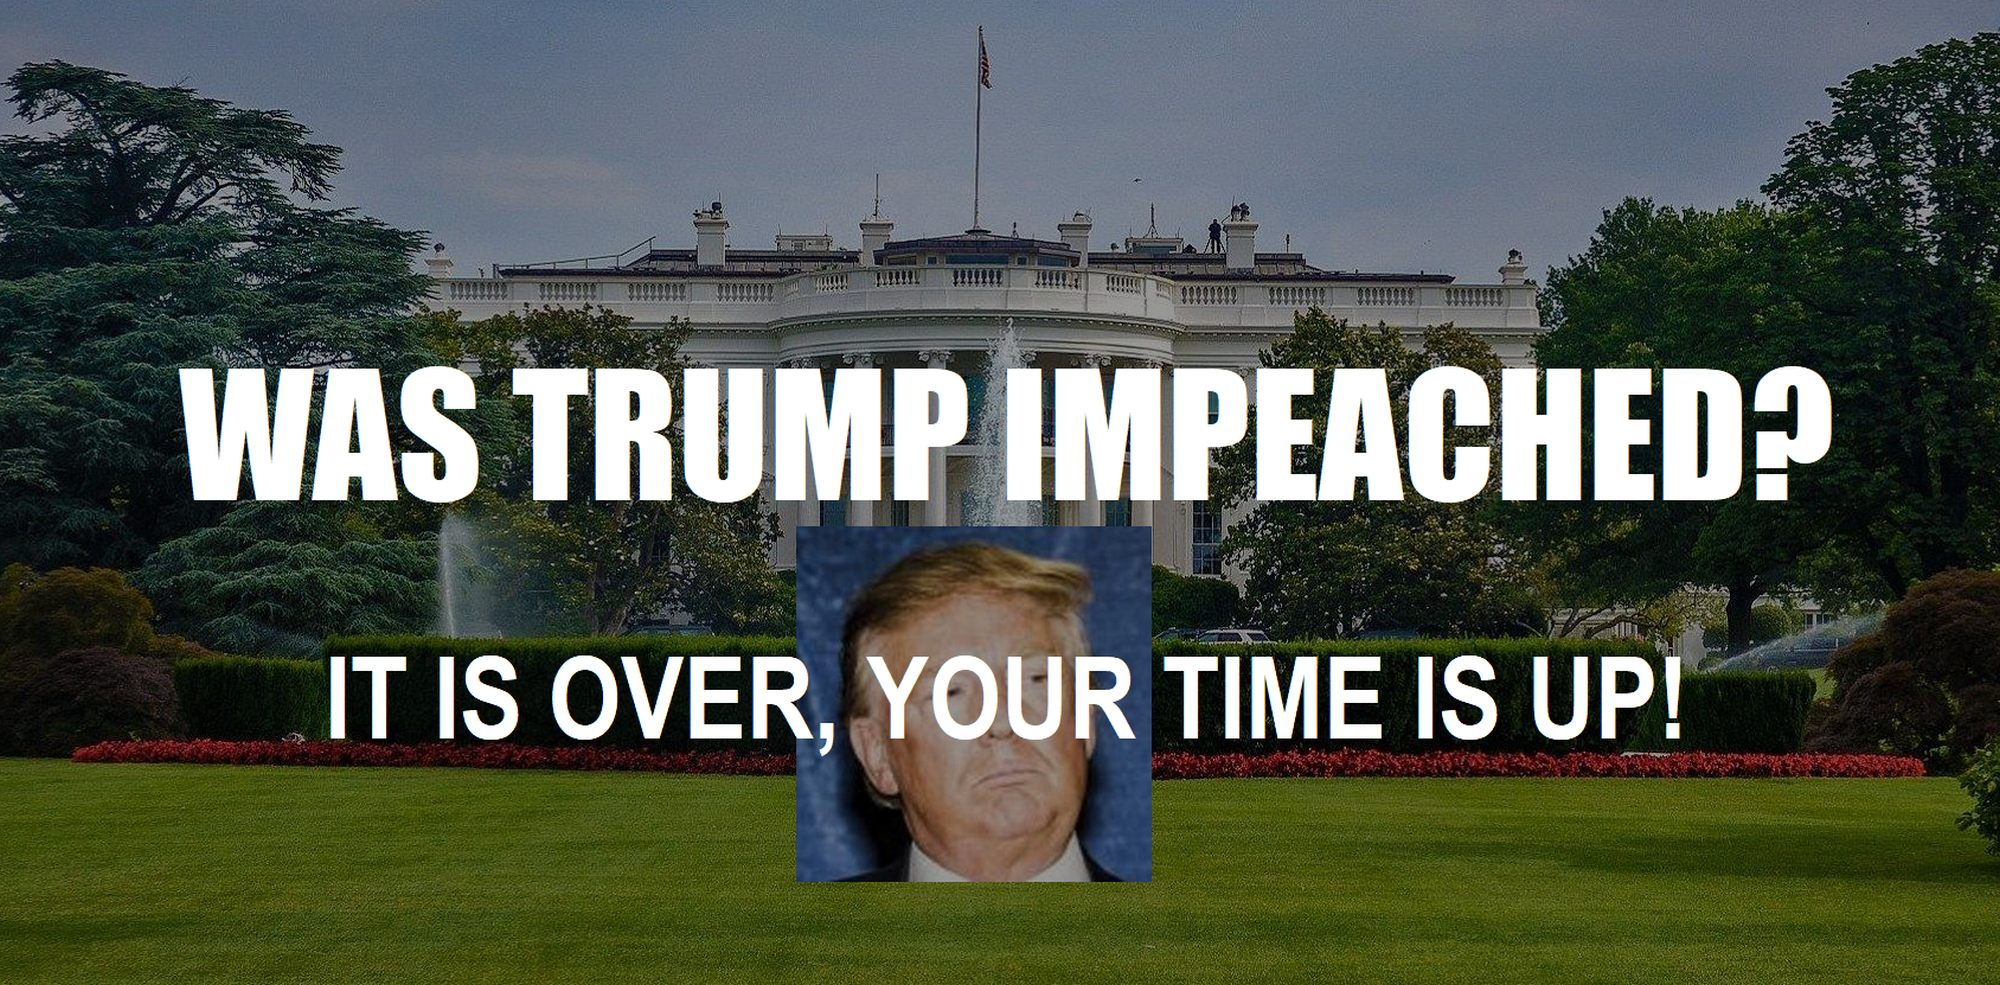 was-trump-impeached-has-trump-been-impeached-again-will-he-be-removed-from-office-convicted-current-news-image